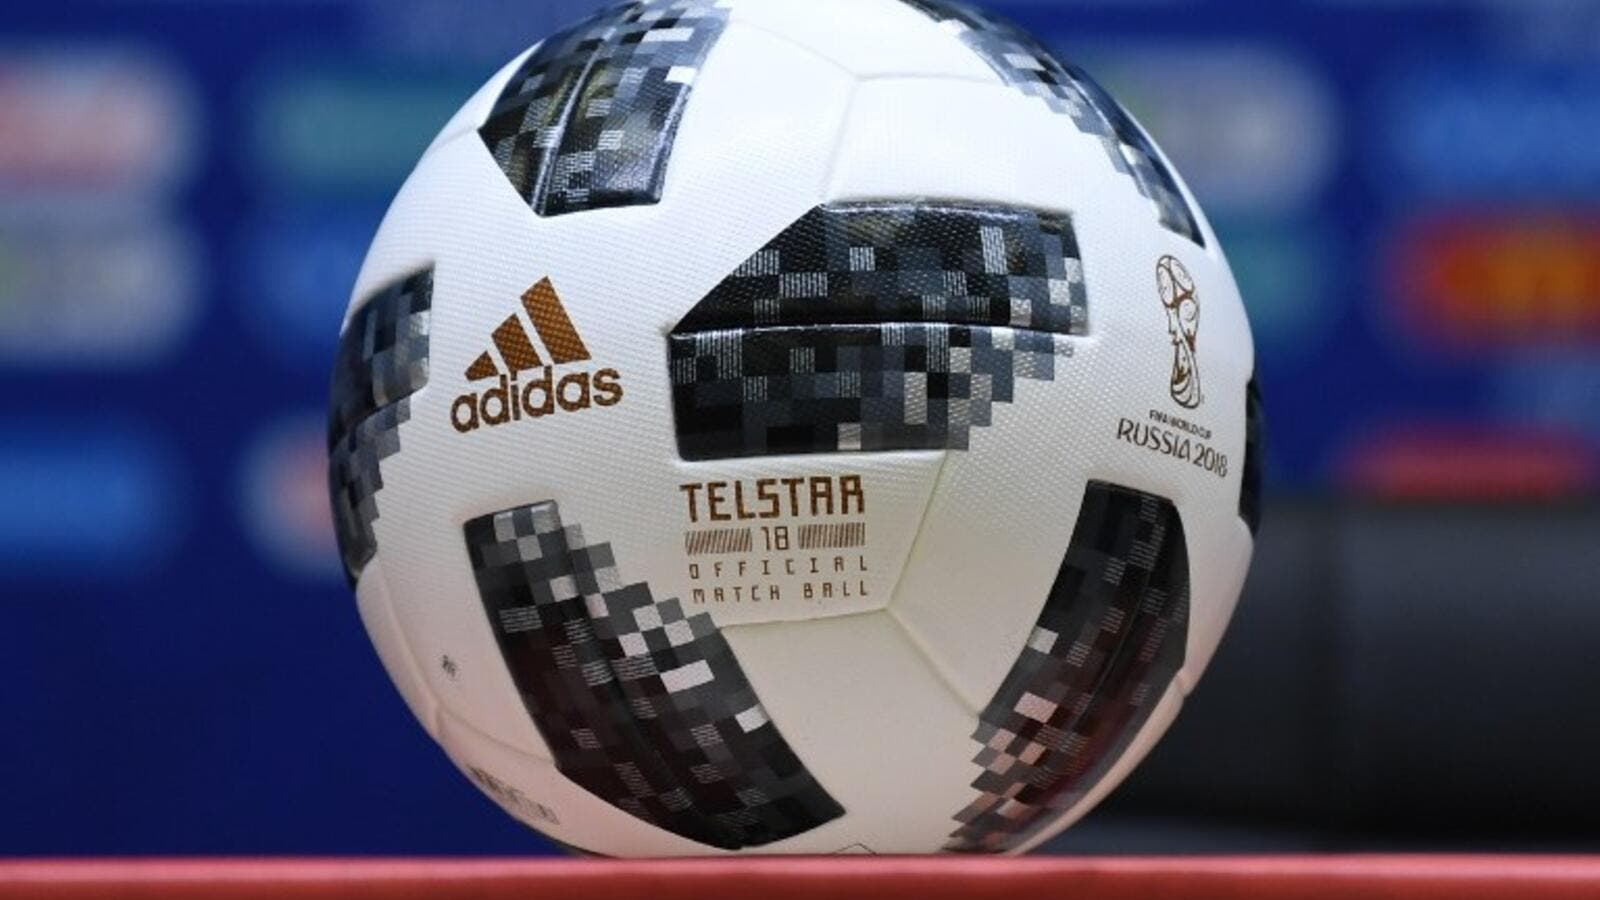 The official Adidas Telstar World Cup football is pictured prior to a press conference in Kaliningrad during the Russia 2018 World Cup football tournament. Ozan KOSE / AFP